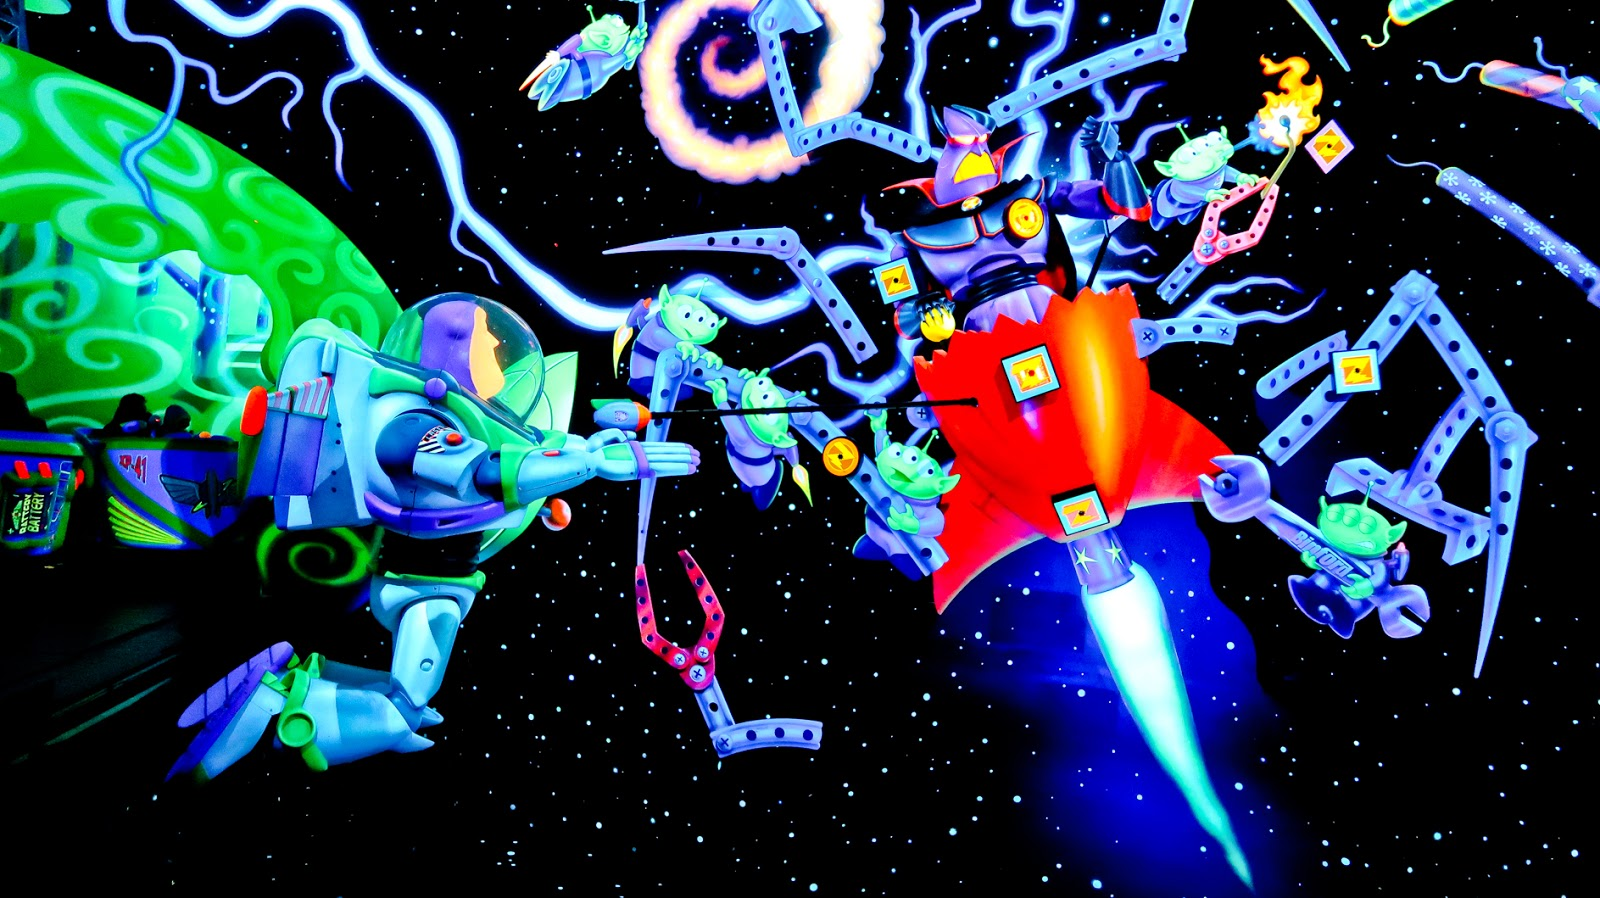 buzz lightyear laser quest, first time at disneyland paris, disneyland paris travel blog, disneyland, disneyland paris highlights, disneyland paris must do, vegetarians at disneyland paris,